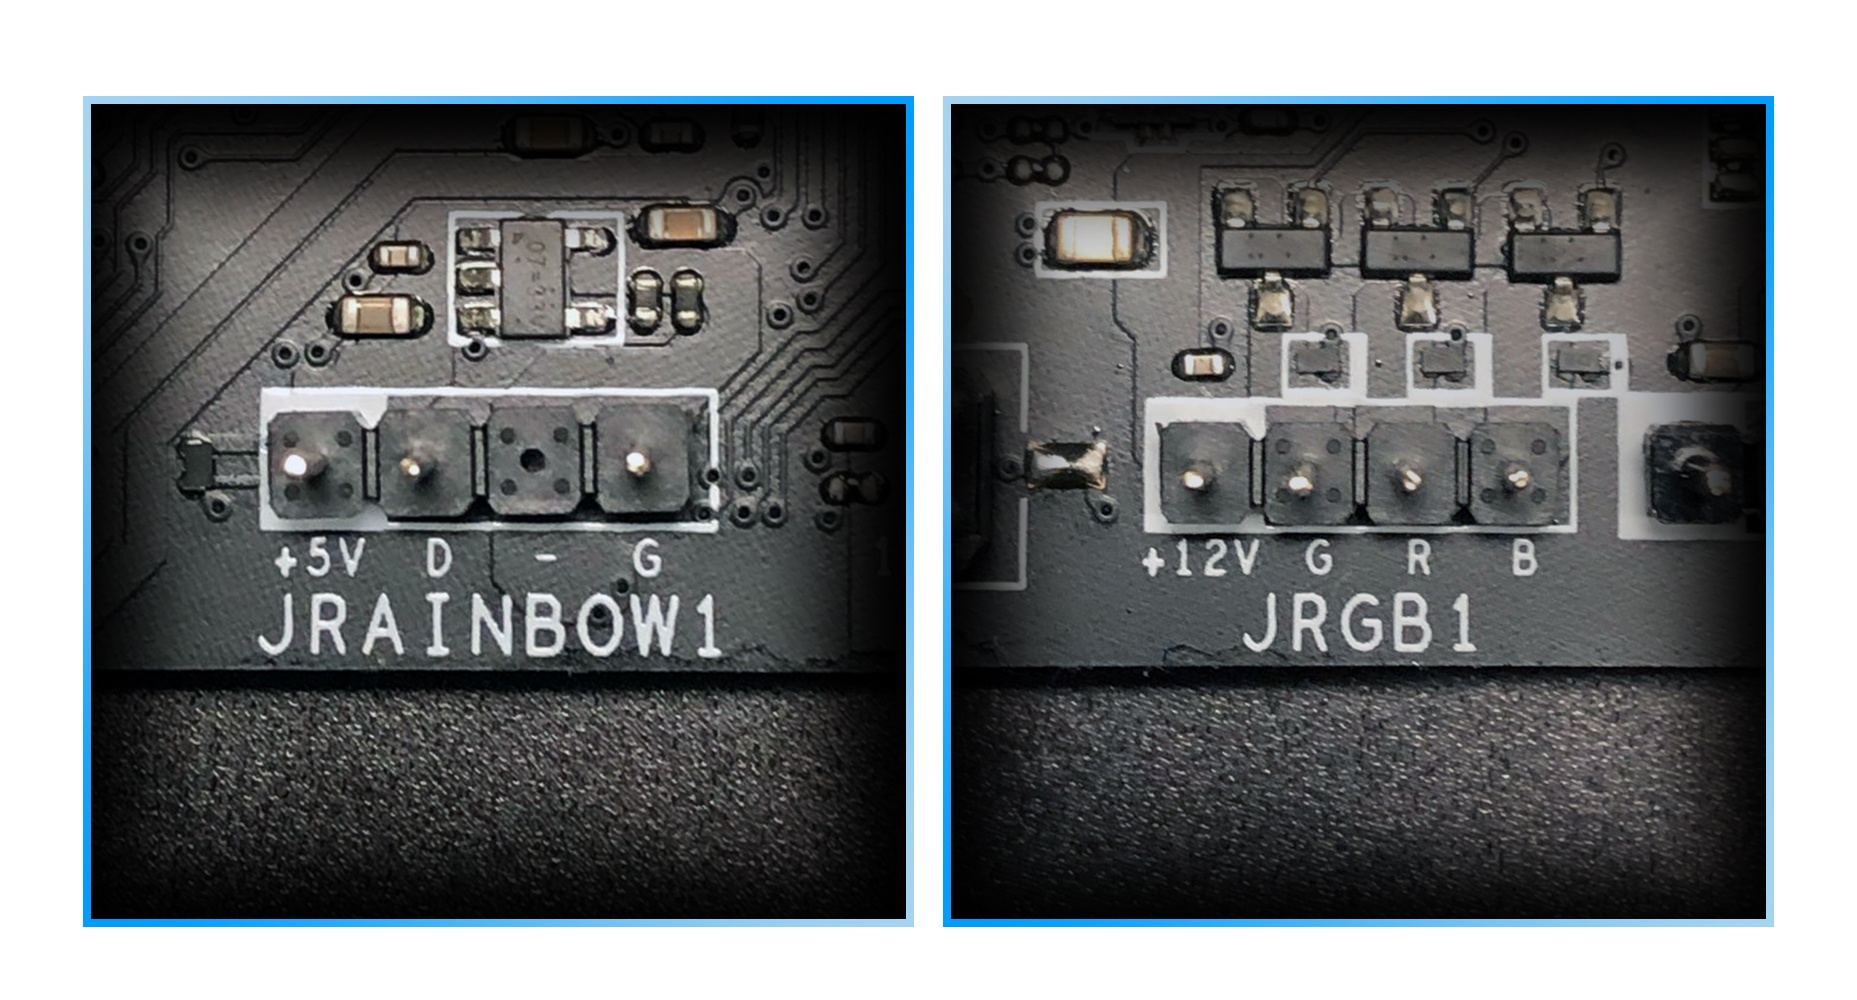 MSI B550M PRO-VDH WIFI EXTEND YOUR RGB EXPERIENCE WITH EASE